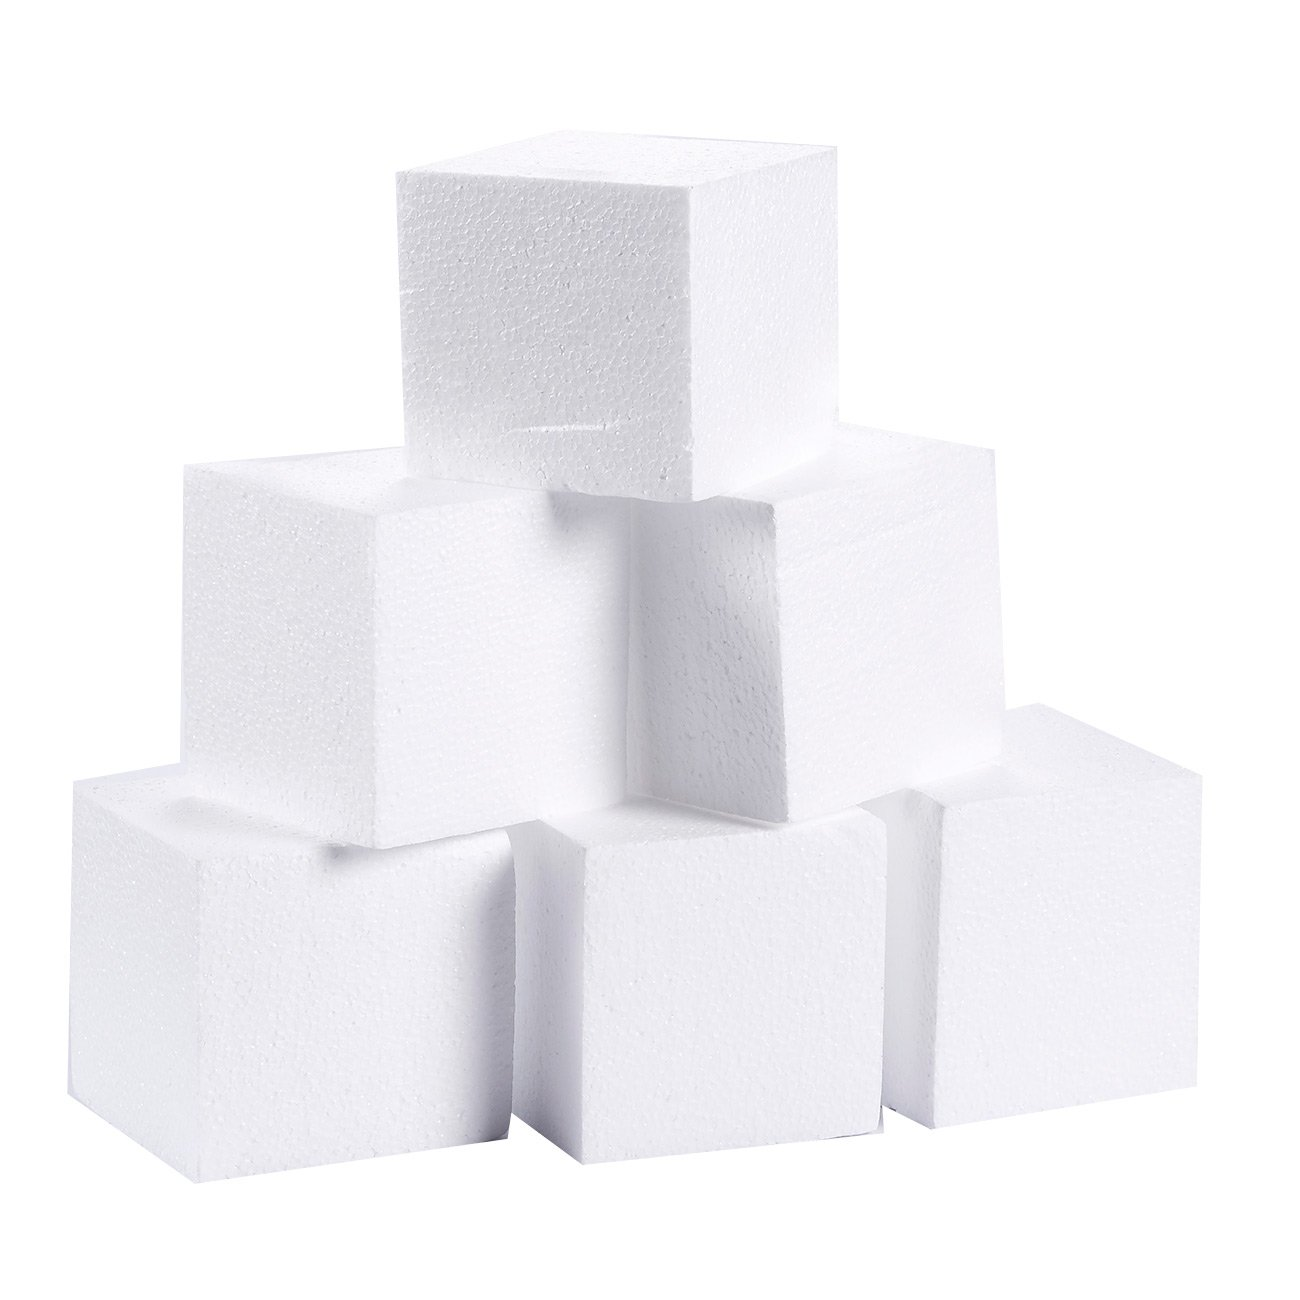 Craft Foam Cube - 6-Pack Square Polystyrene Foam Block Foam Brick for Sculpture, Modeling, DIY Arts and Crafts - White, 4 x 4 x 4 inches Juvale